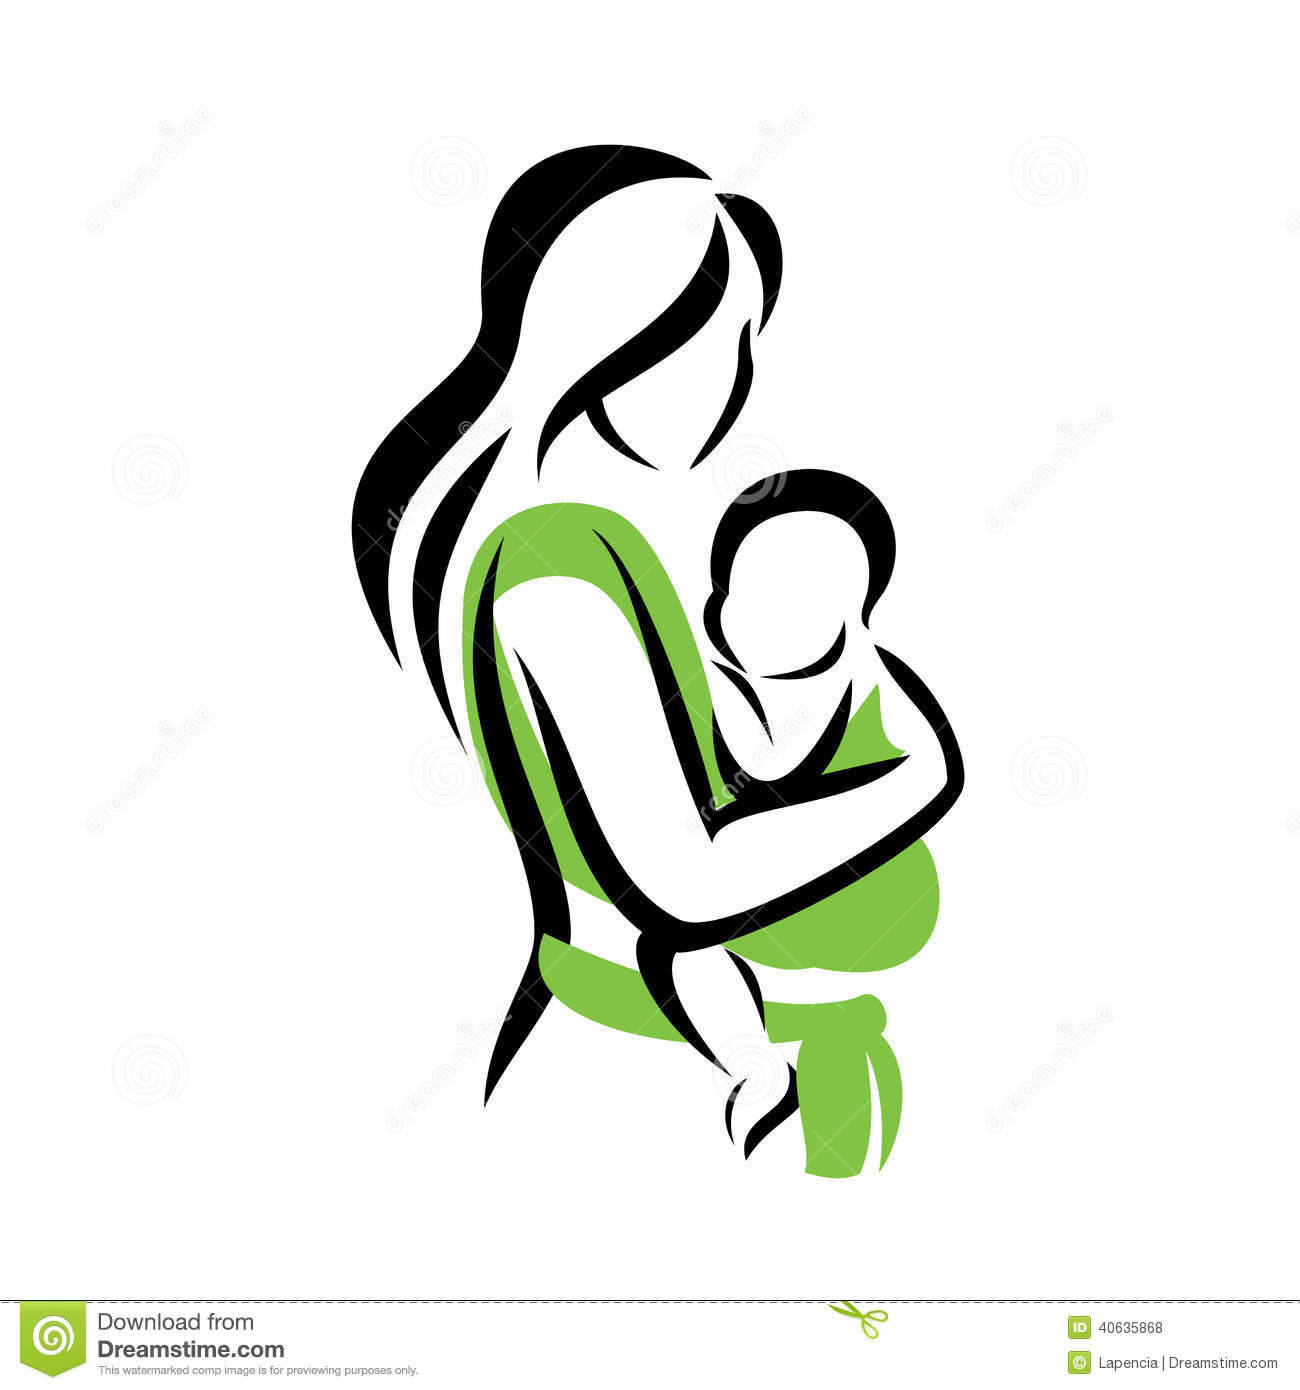 baby jesus silhouette clip art at getdrawings com free for rh getdrawings com